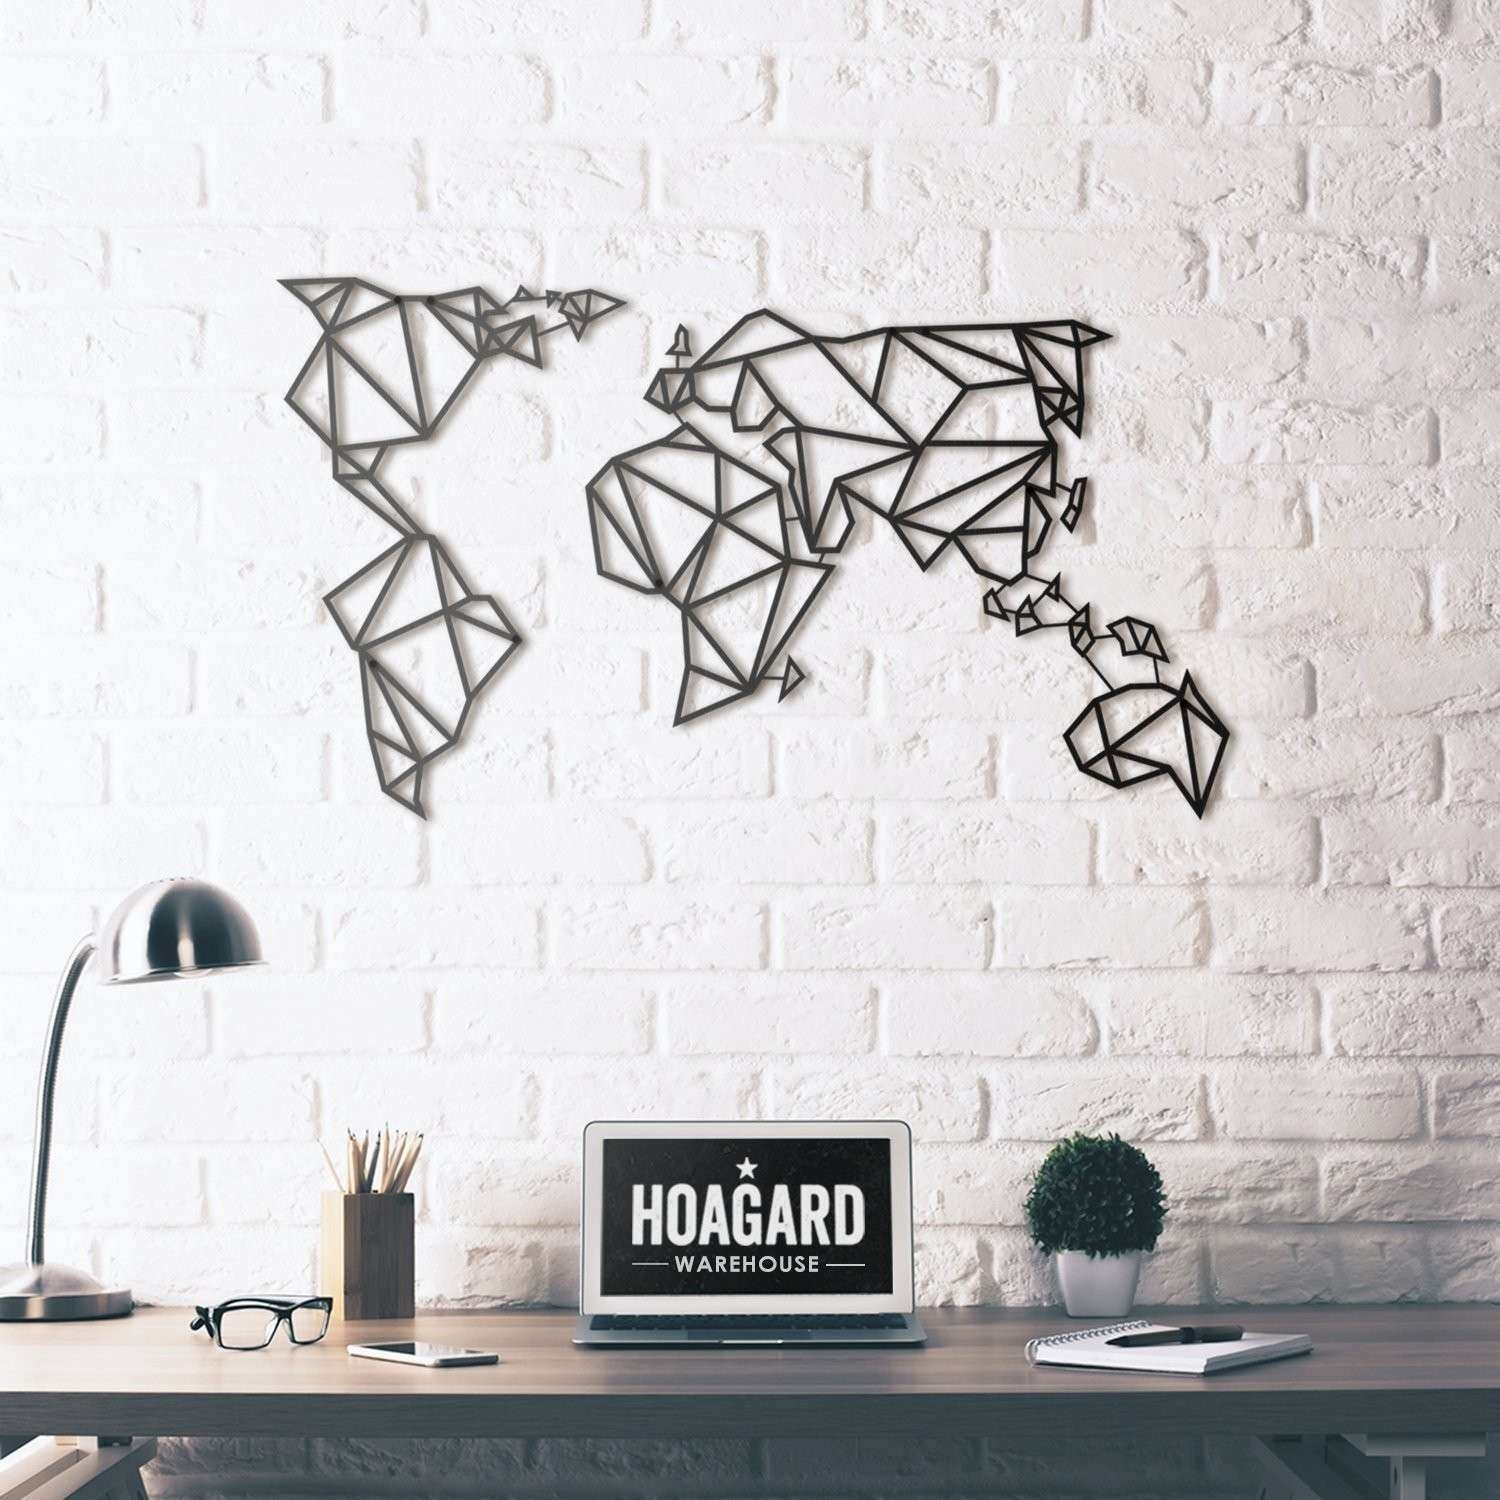 World Map Metal Wall Art Lovely Metal Wall Art World Map Hoagard Of pertaining to World Map For Wall Art (Image 13 of 20)